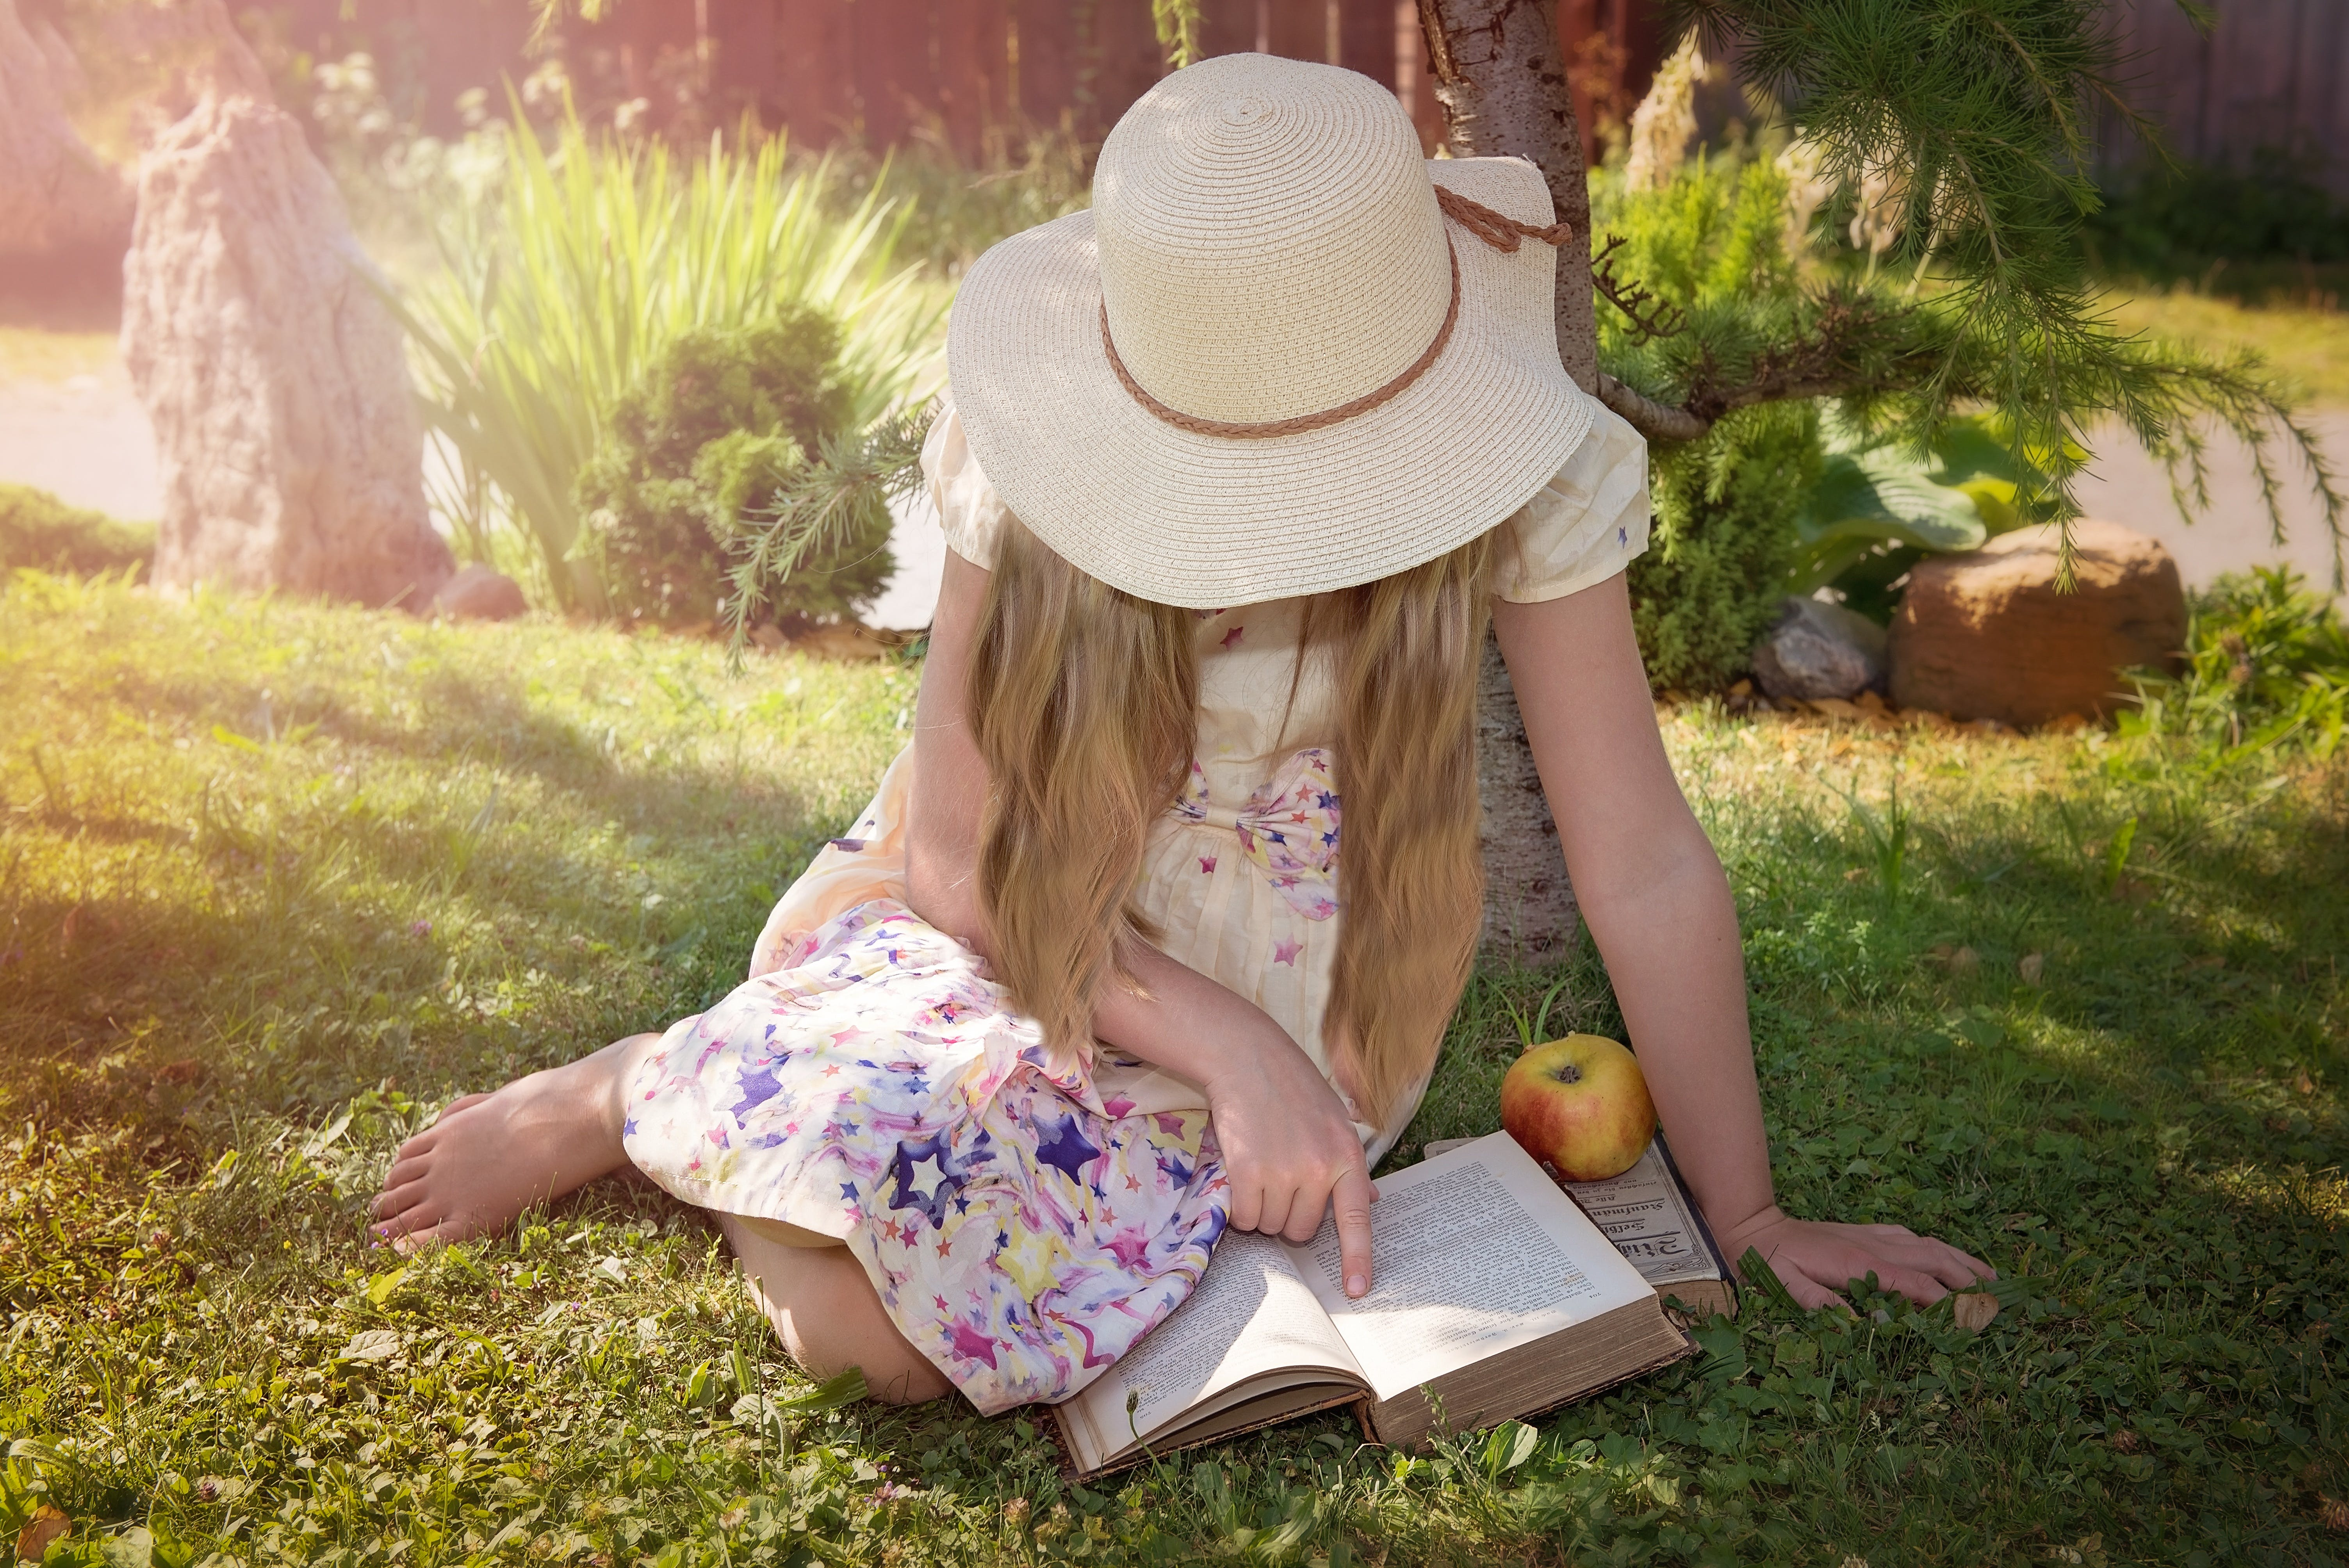 Woman Sitting on Grass While Reading Book